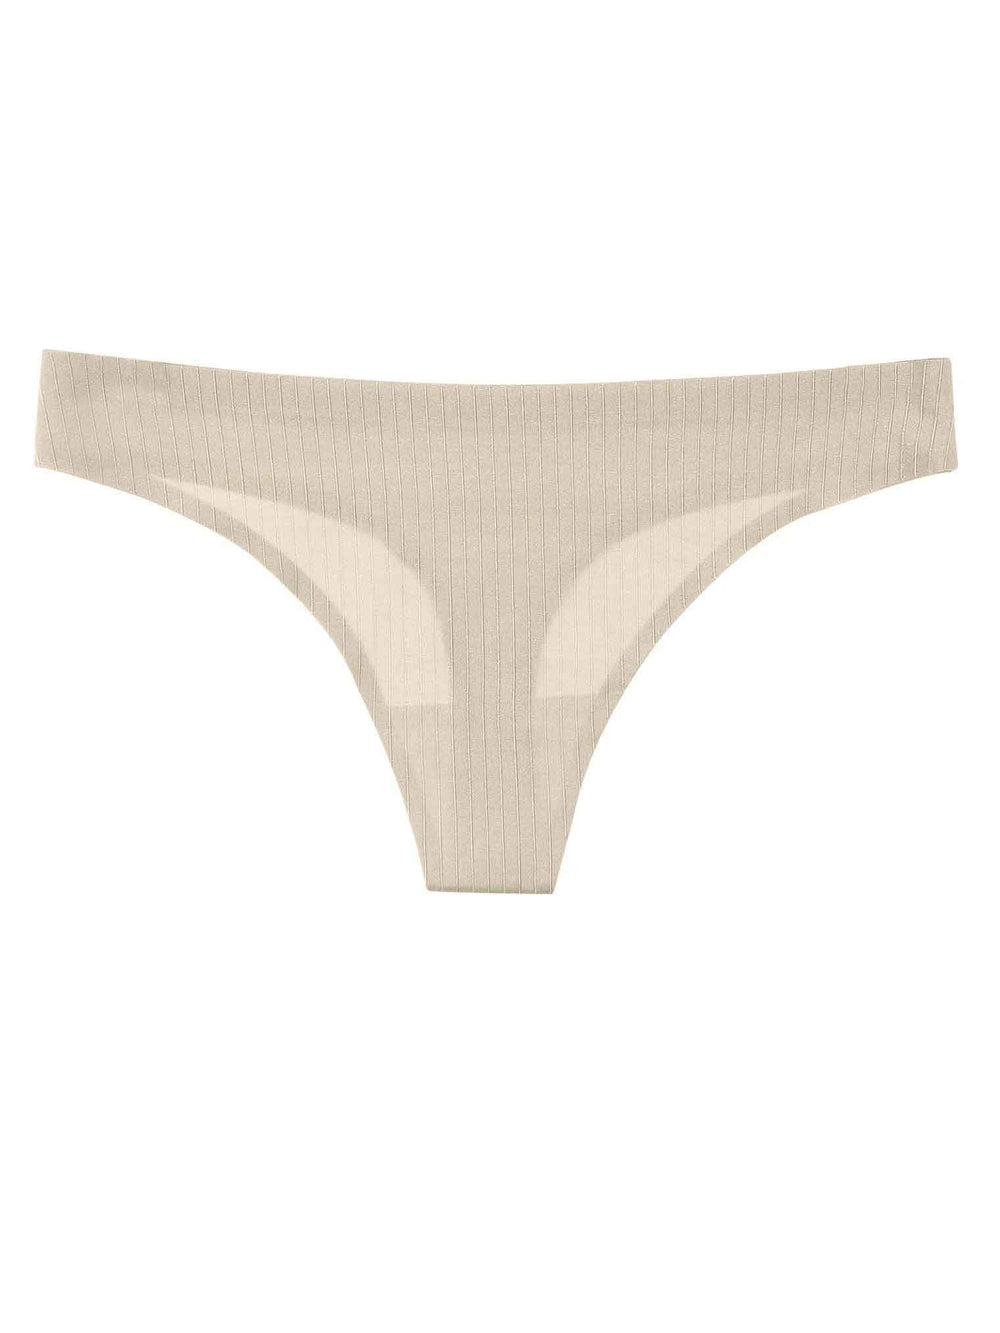 Striped Laser Cut Thong - Youmita Lingerie